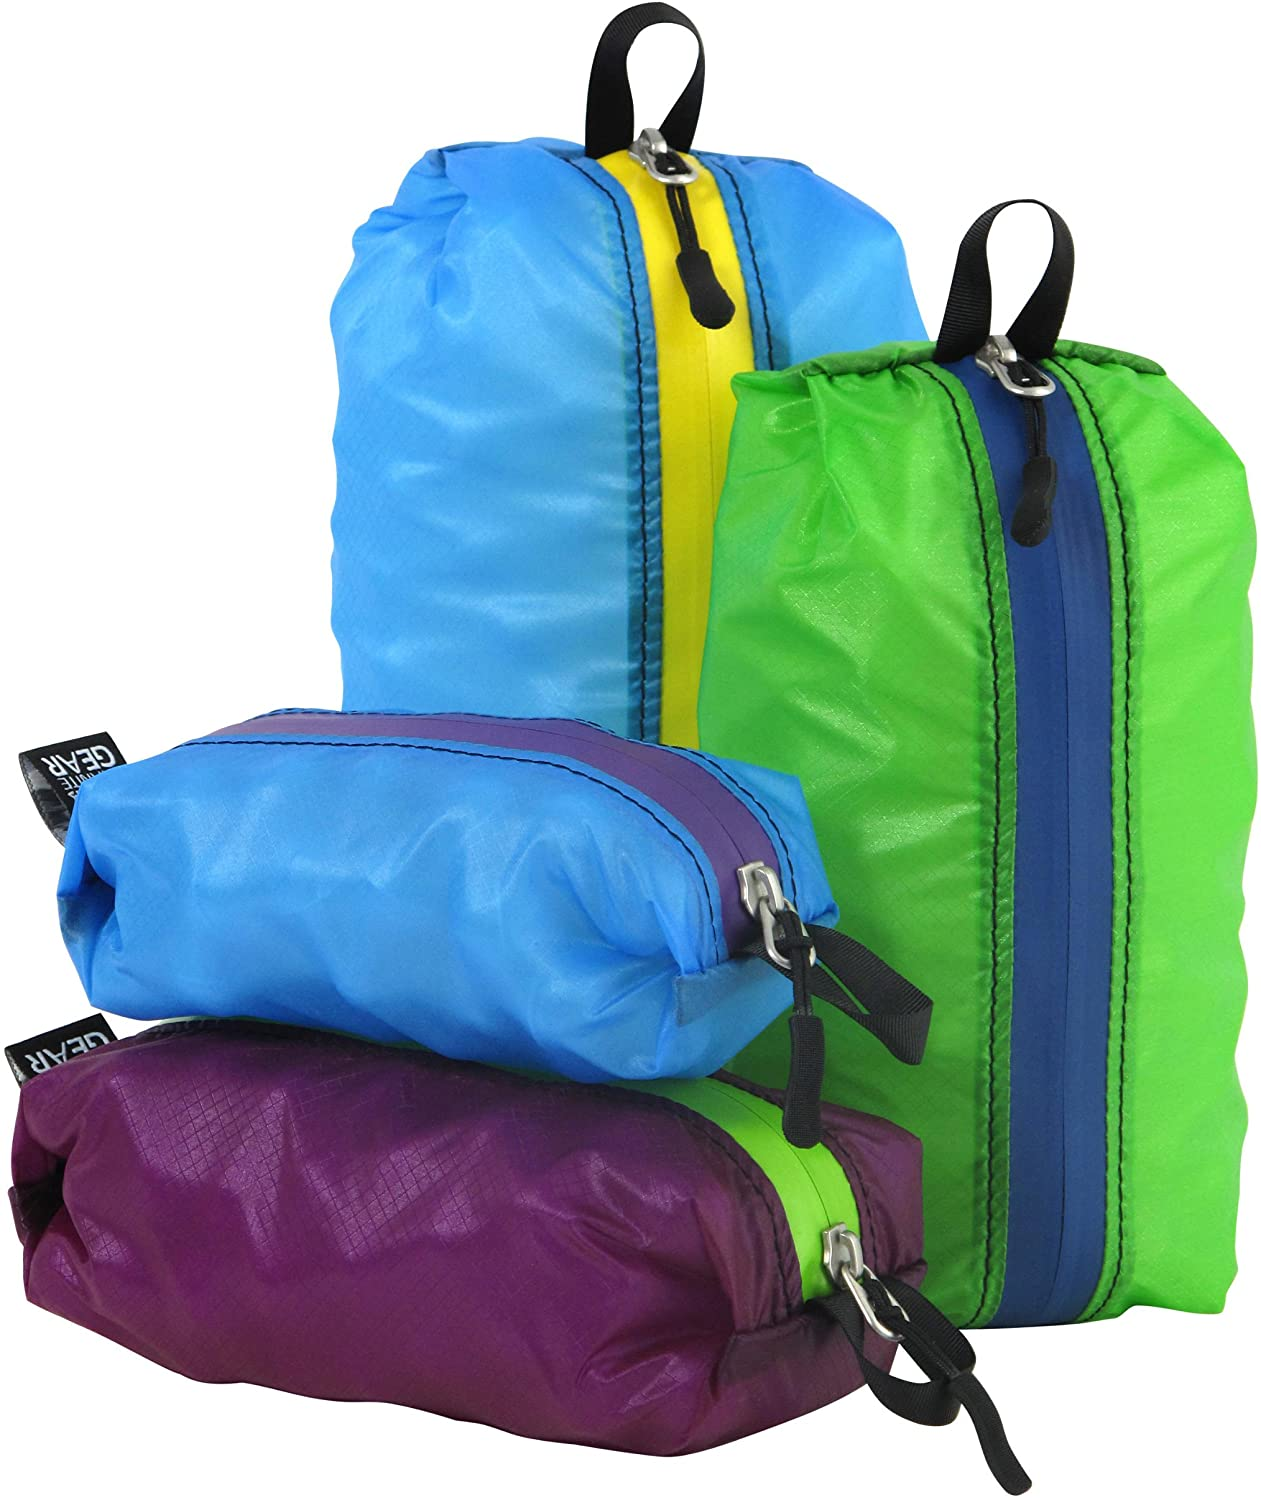 Granite Gear Air Zipditty Zippered Pouch Set S 4 of - Each Sales for Max 58% OFF sale One